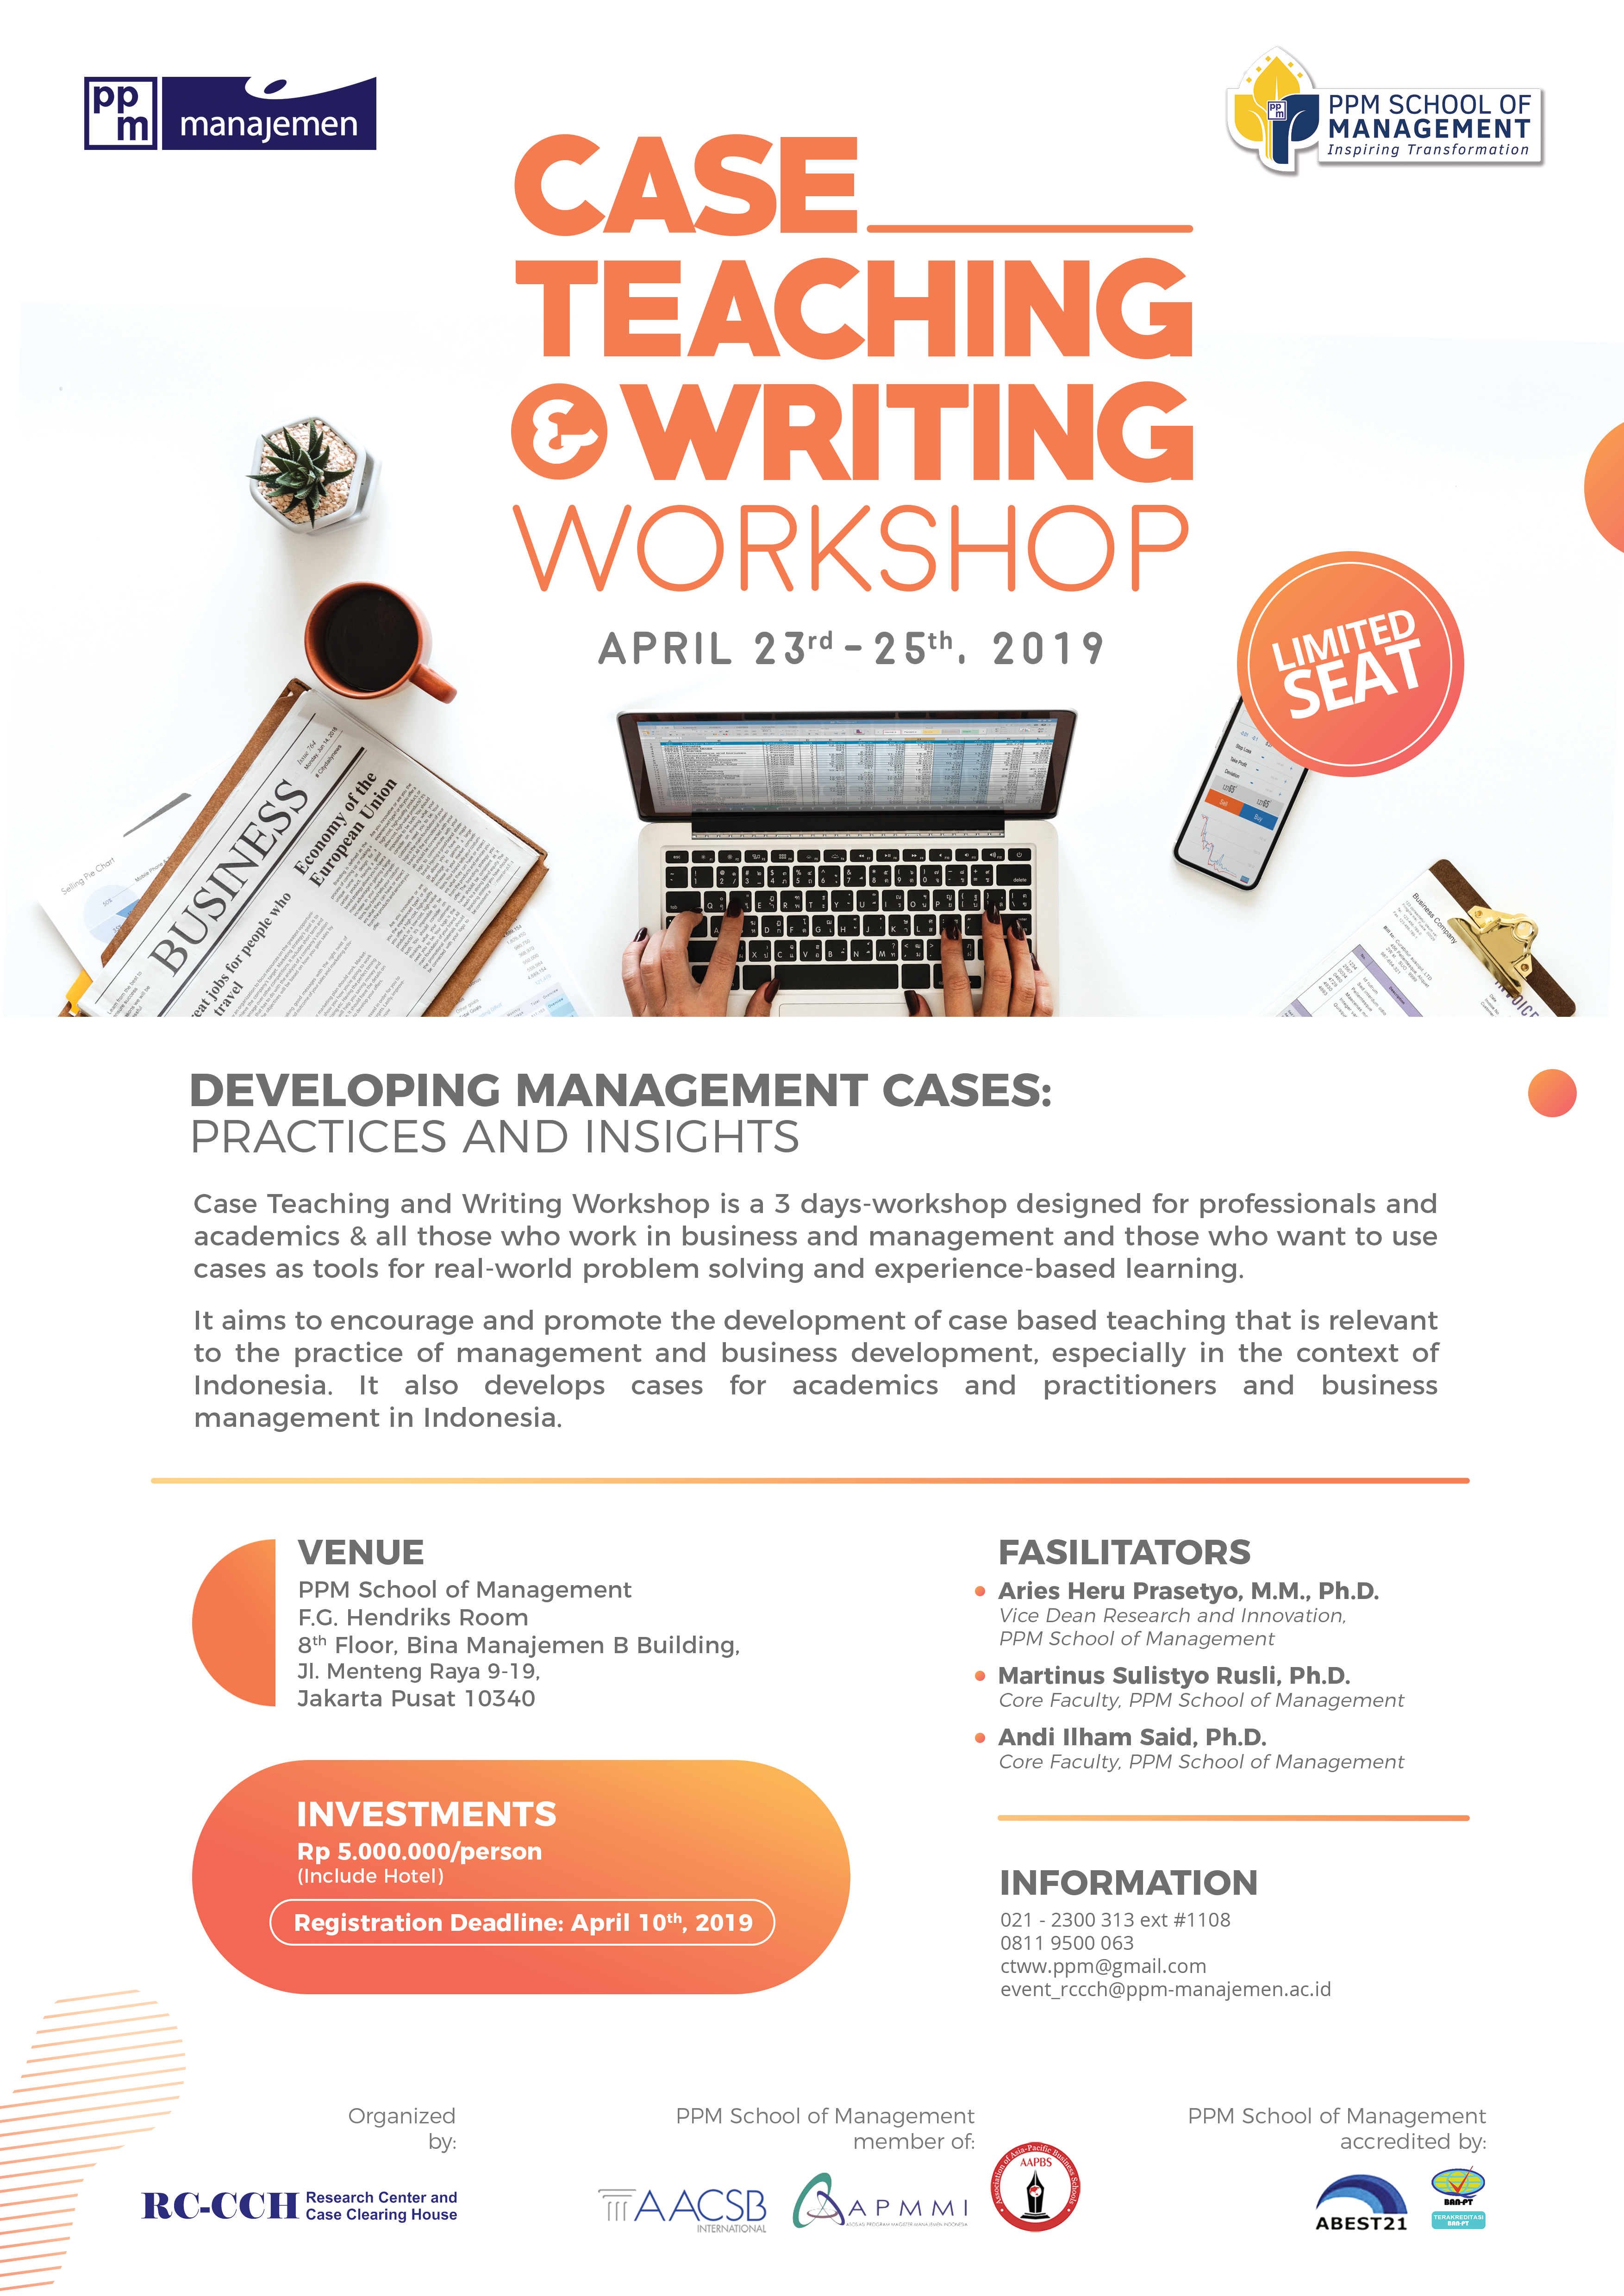 CASE TEACHING AND WRITING WORKSHOP 2019 « Research Center